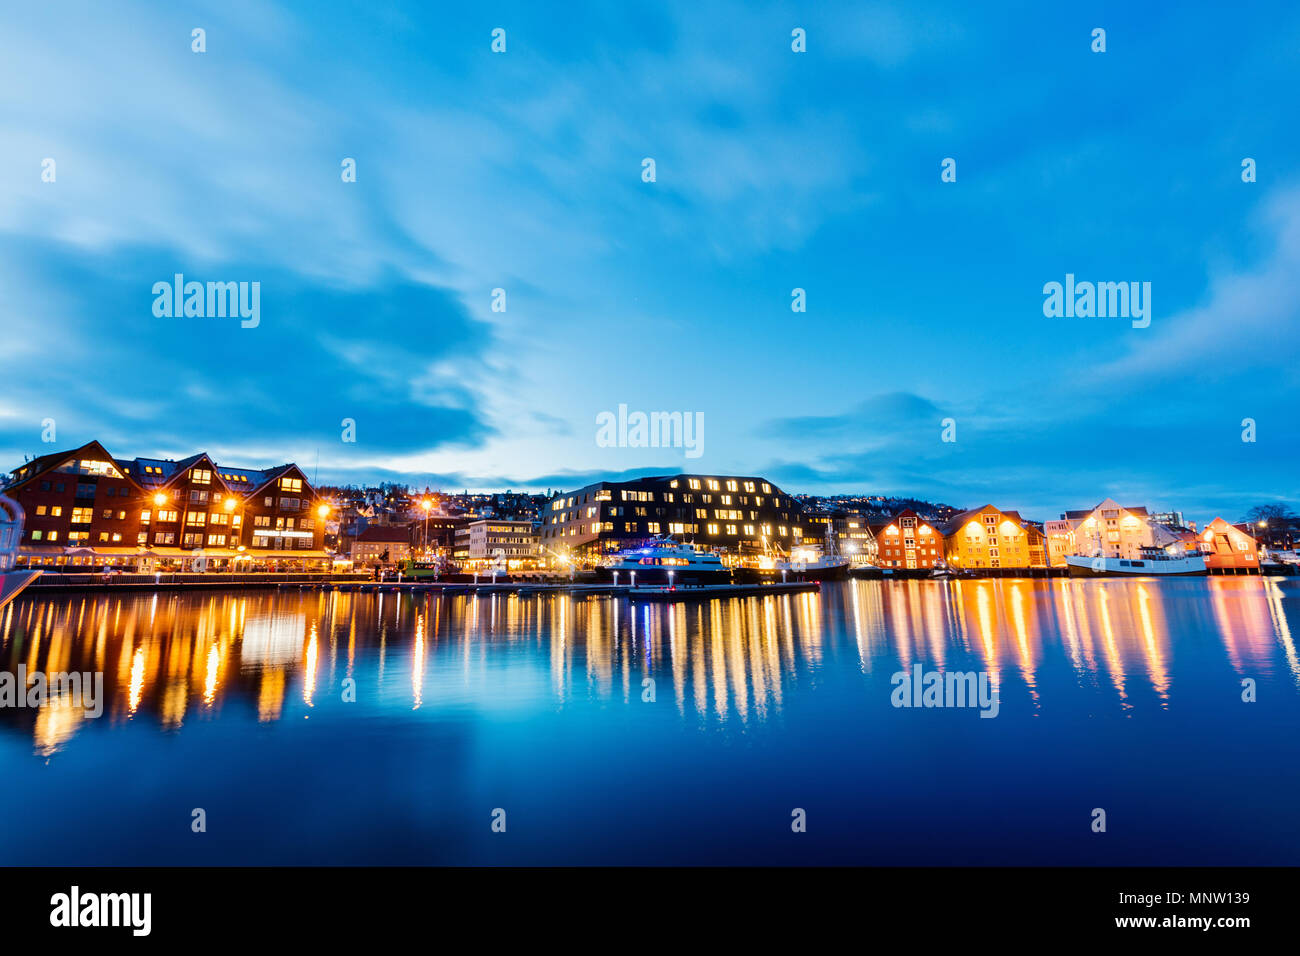 Beautiful town of Tromso in Northern Norway at dusk twilight - Stock Image